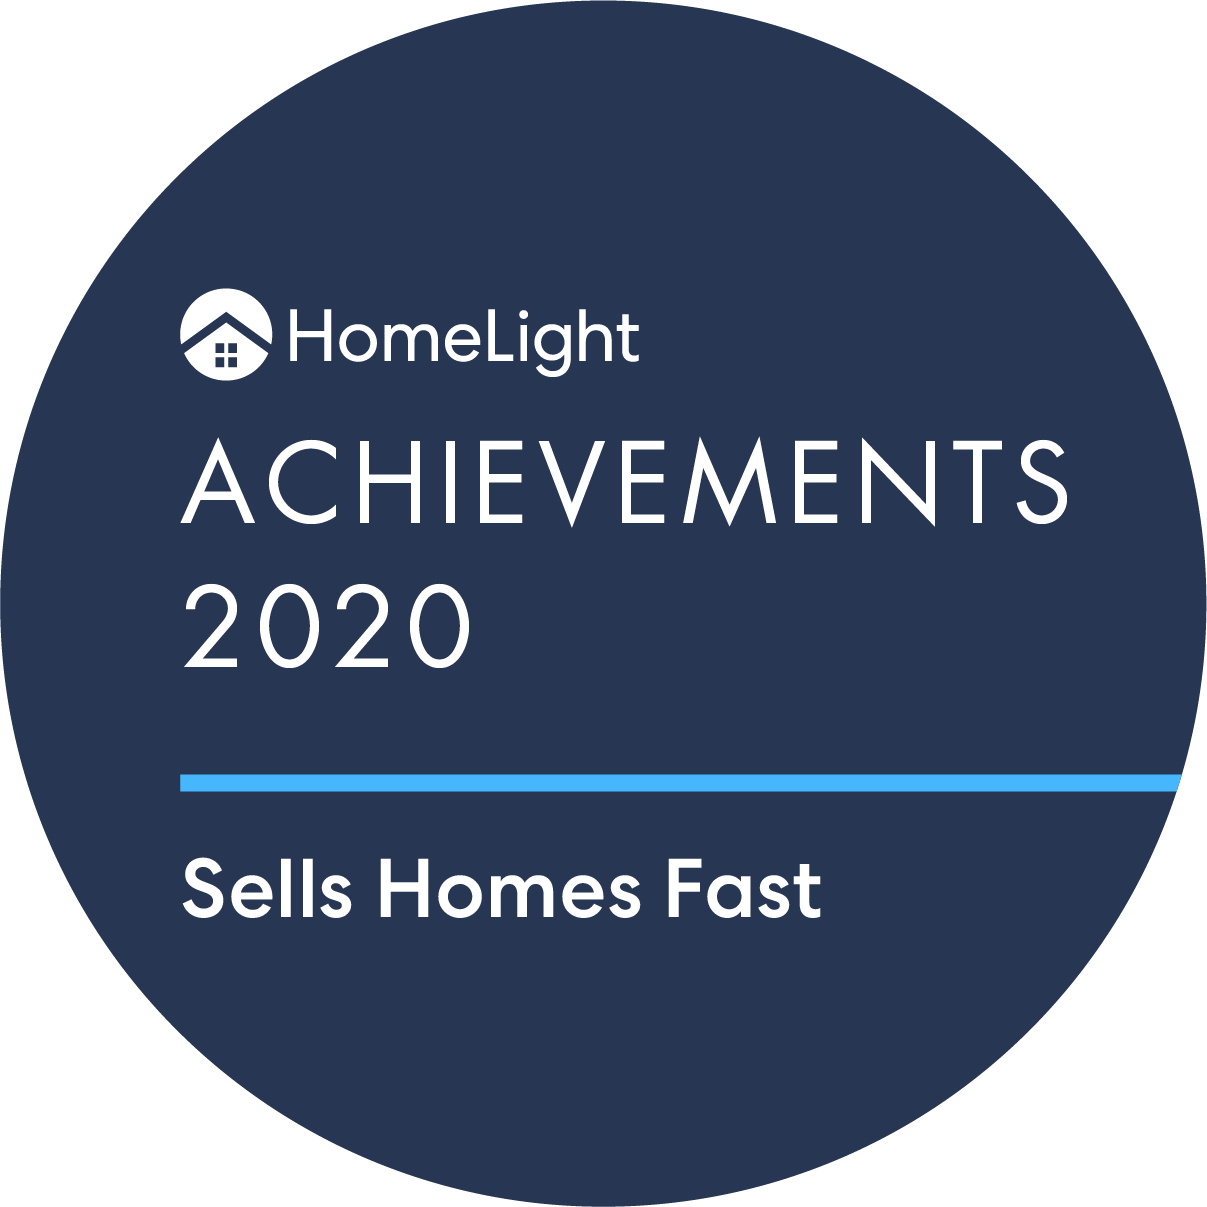 HomeLight Achievement Winner - Cathy Jackson - Top California Real Estate Agent